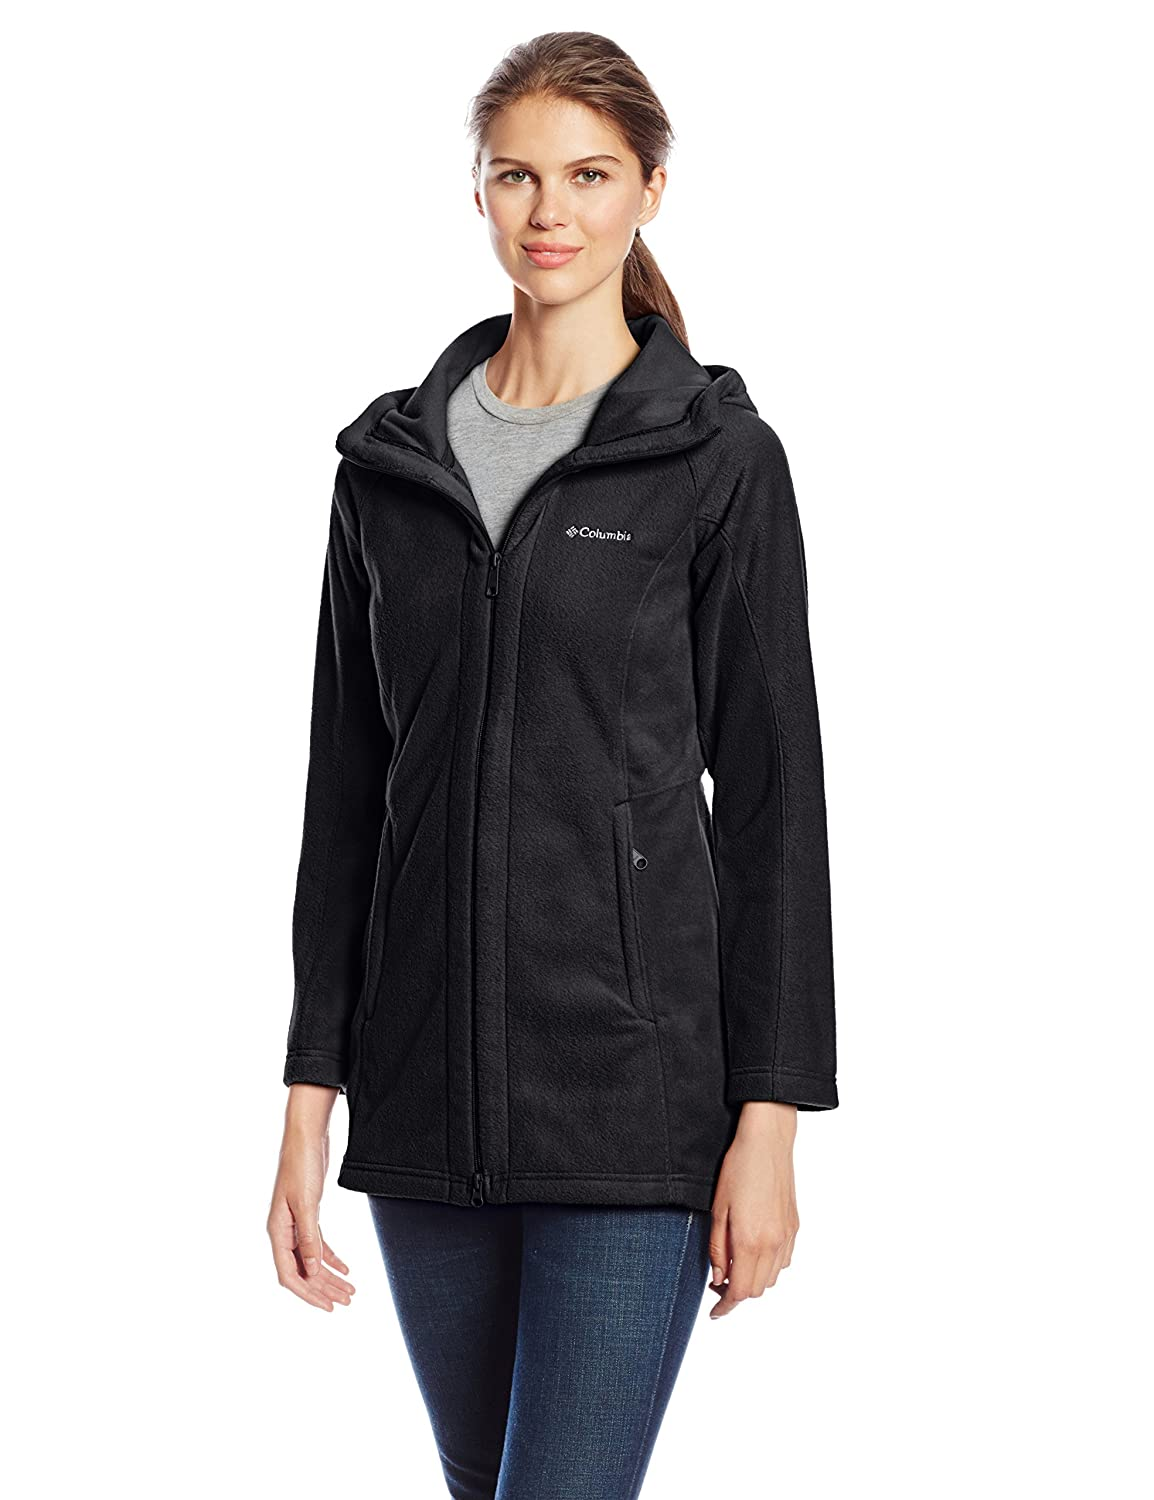 Columbia Benton Springs II Long Hoodie Jacket at Amazon Women&39s